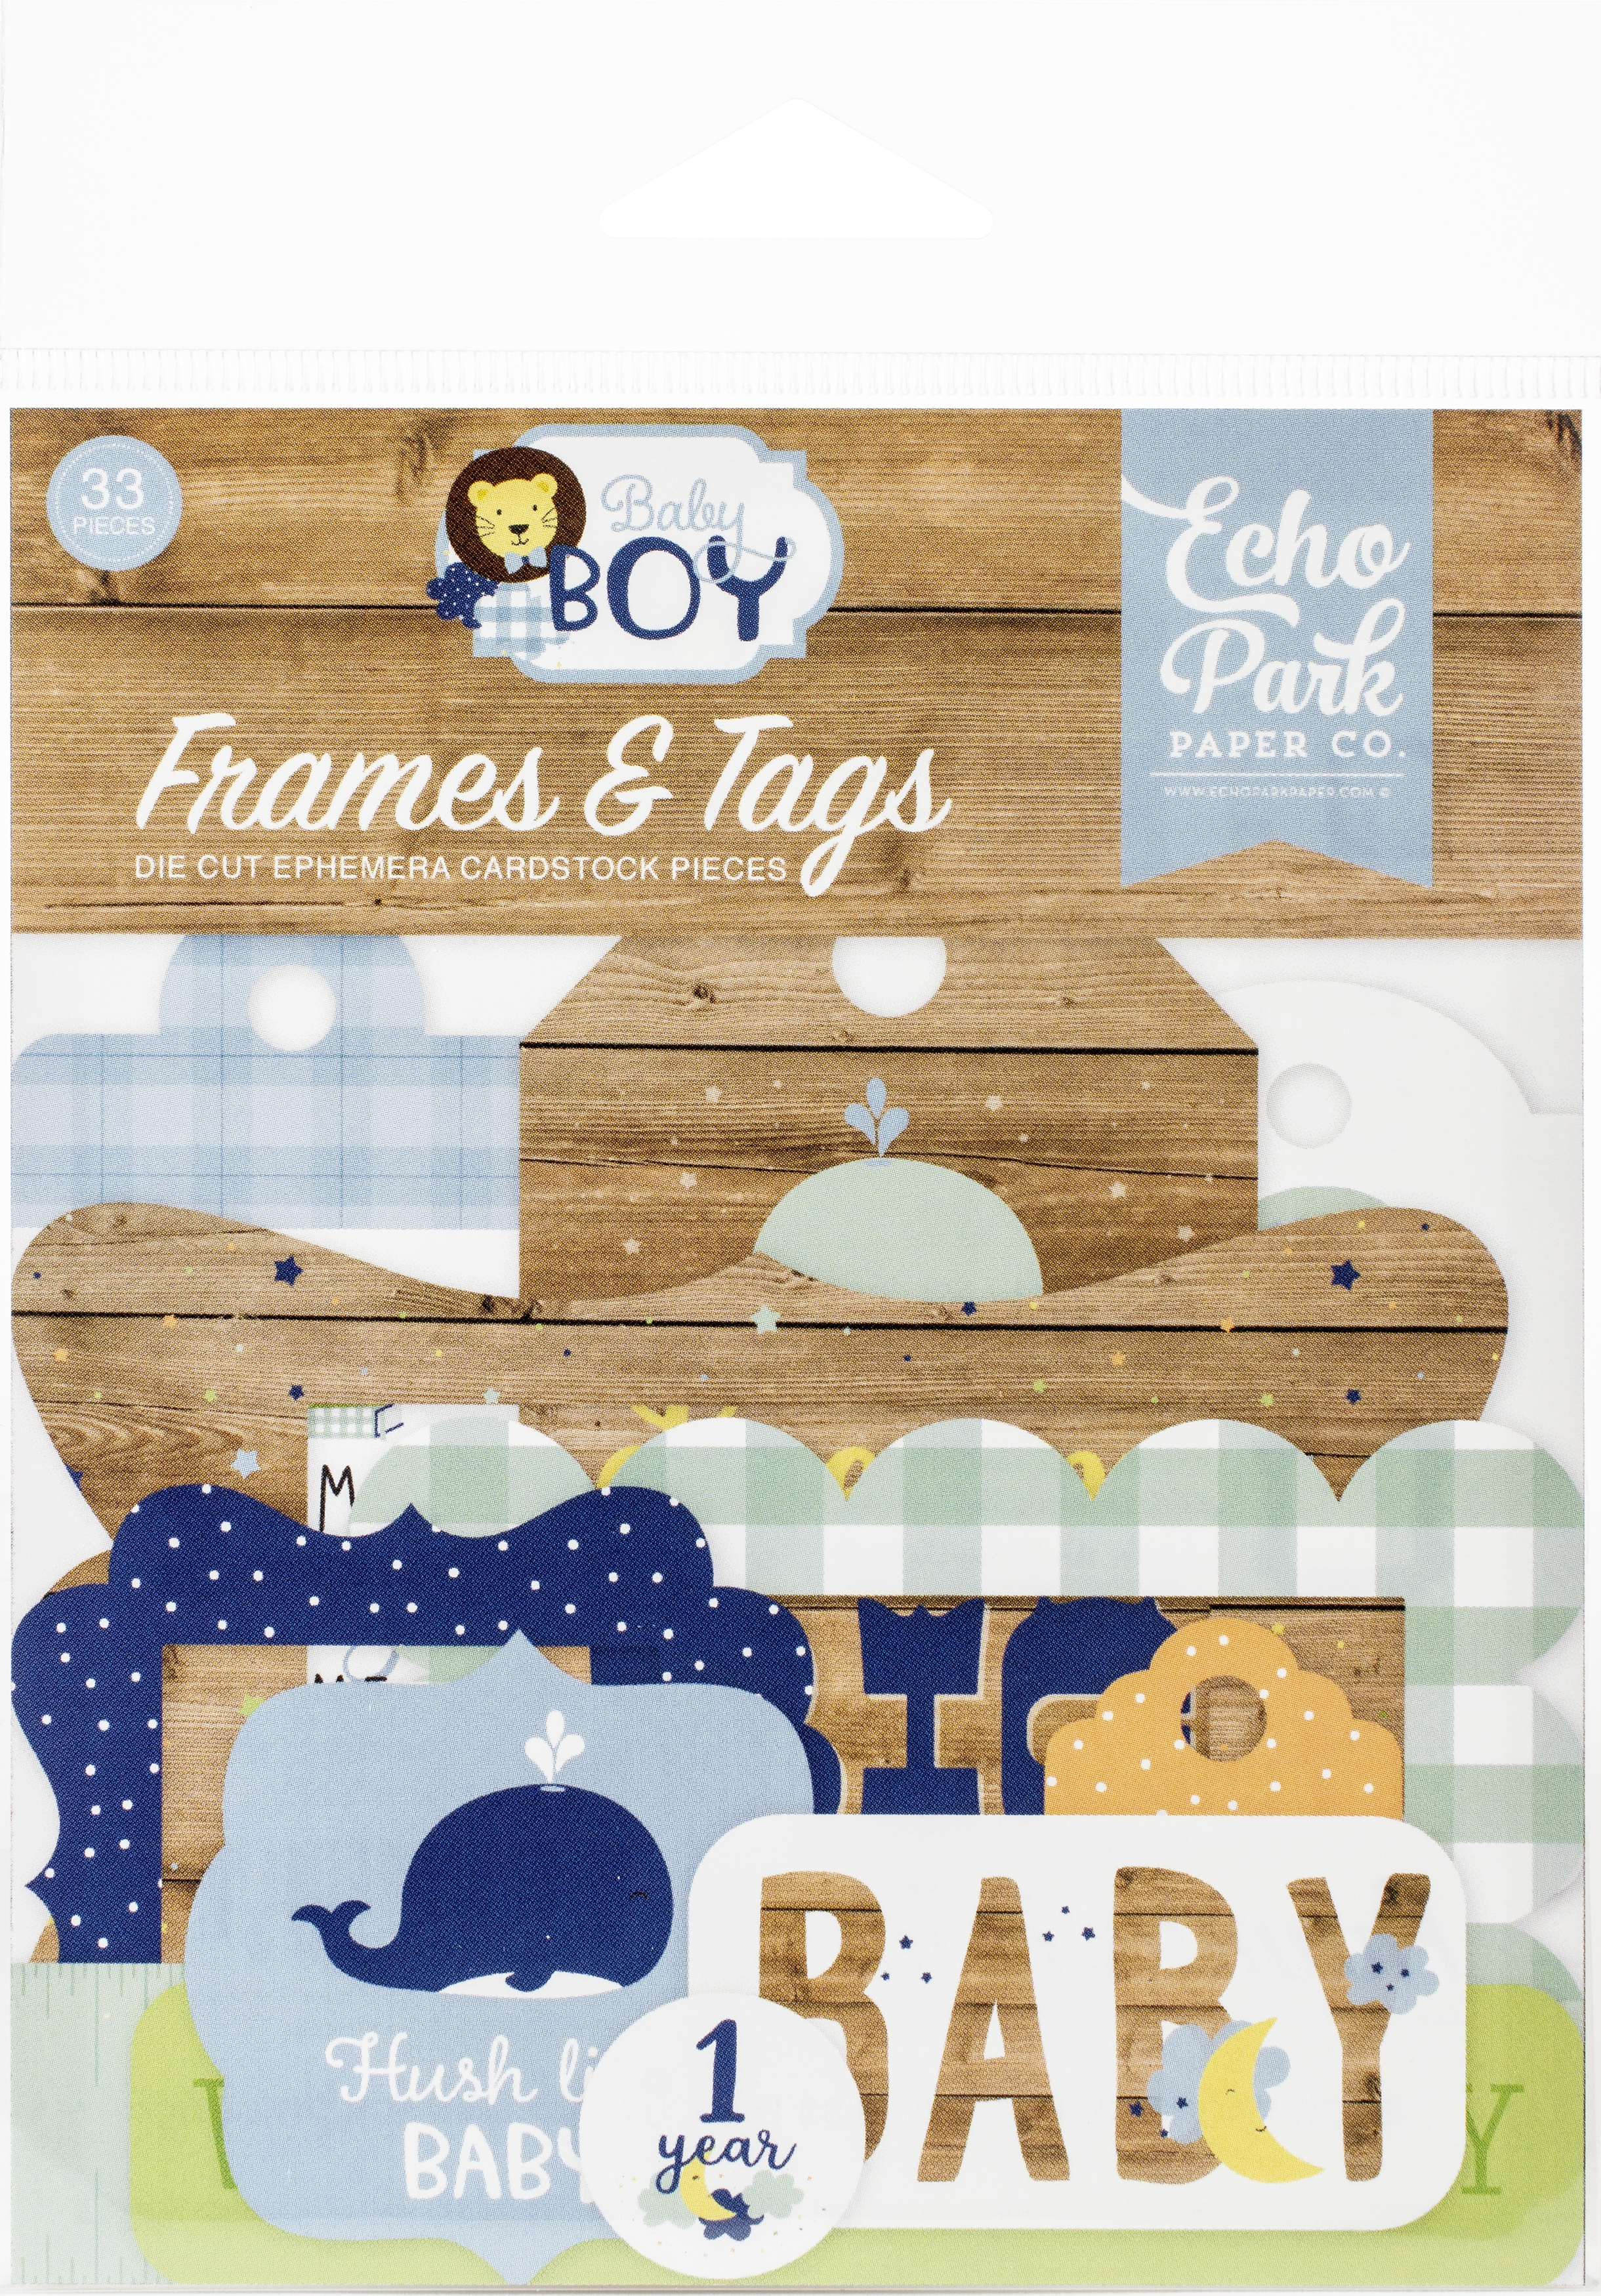 Echo Park Baby Boy - Frames & Tags